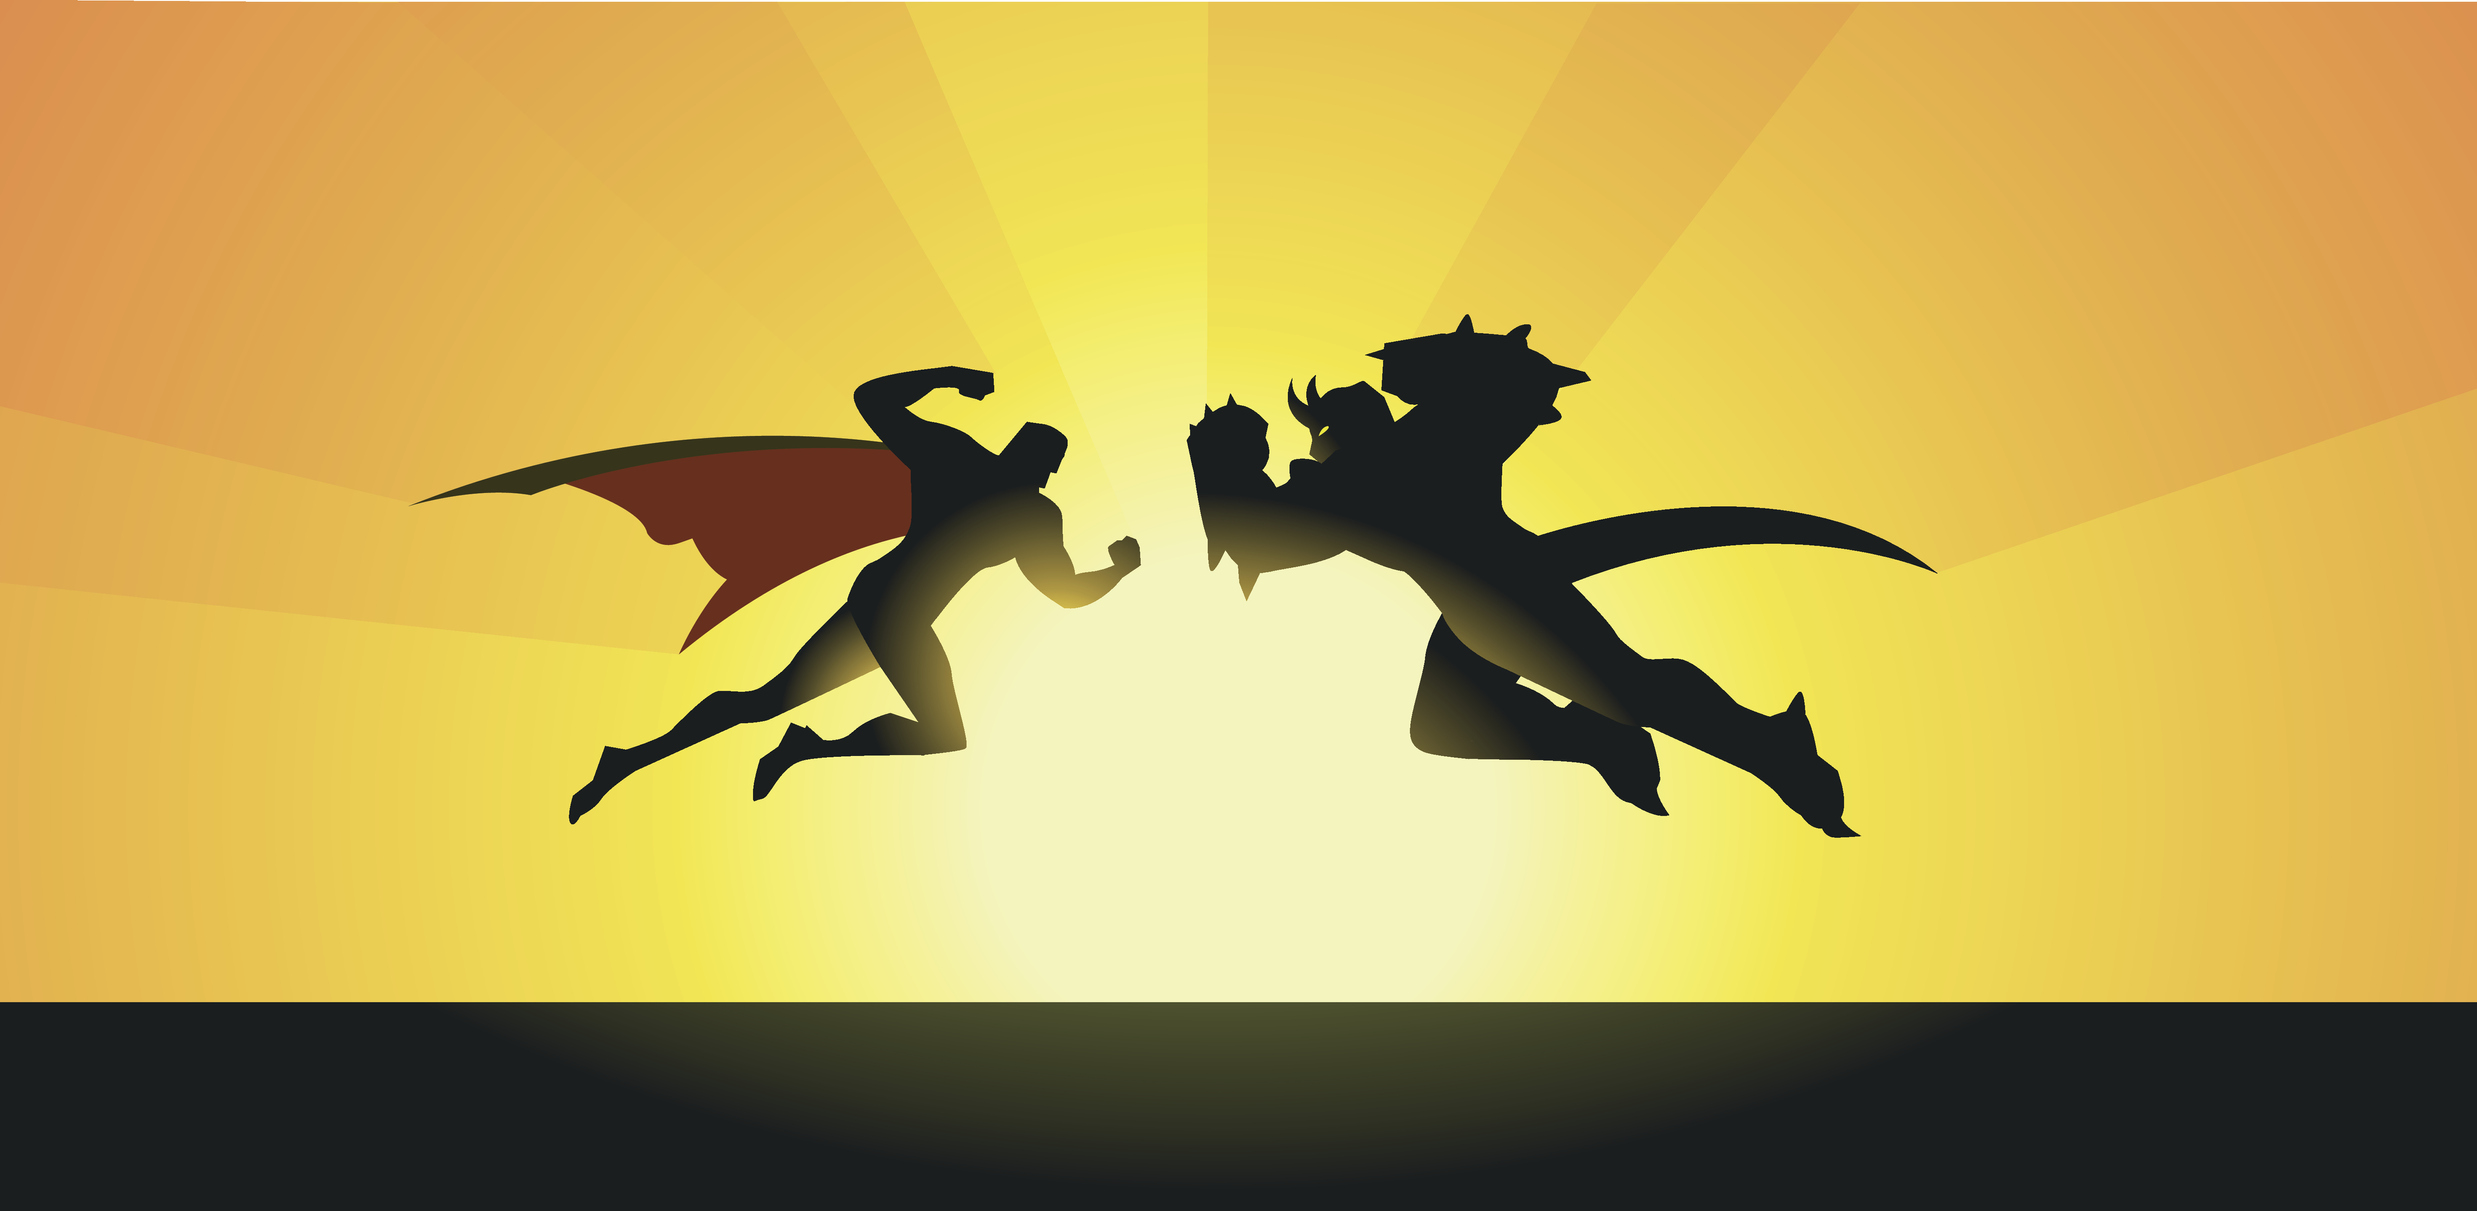 How to Make Hero-Villain Brand Stories Drive Conversions